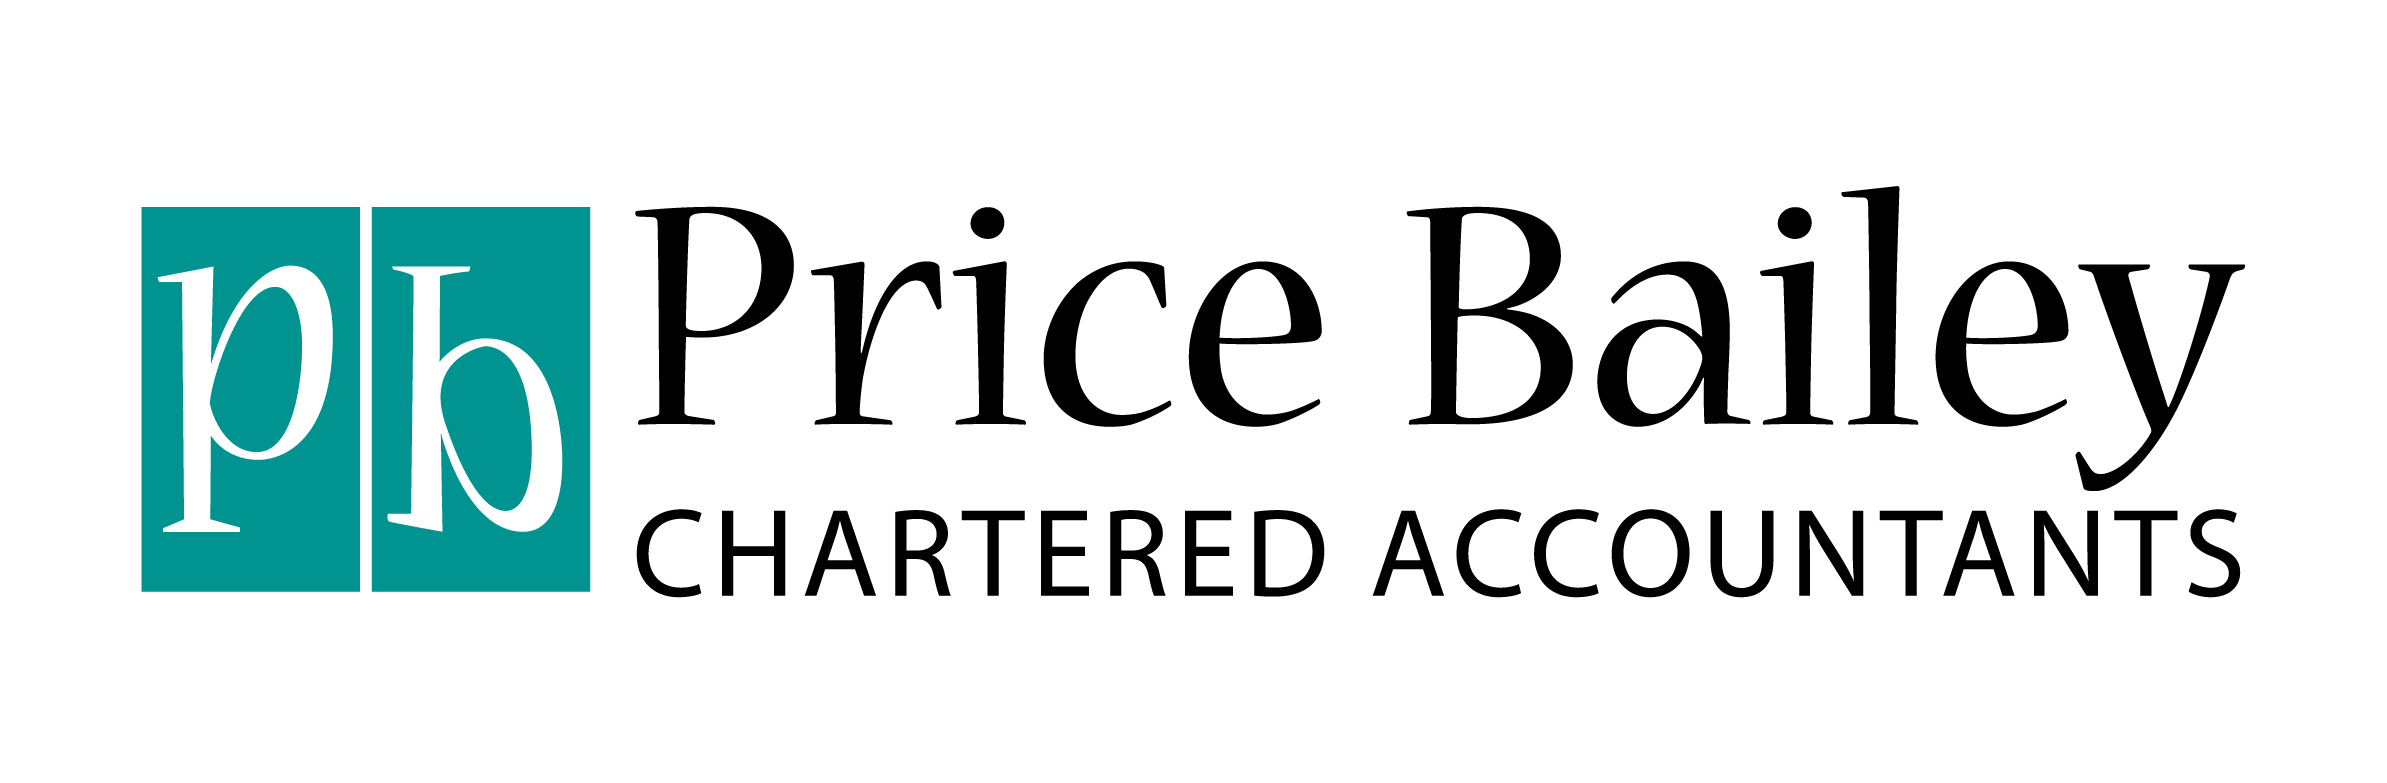 Price Bailey Chartered accountants